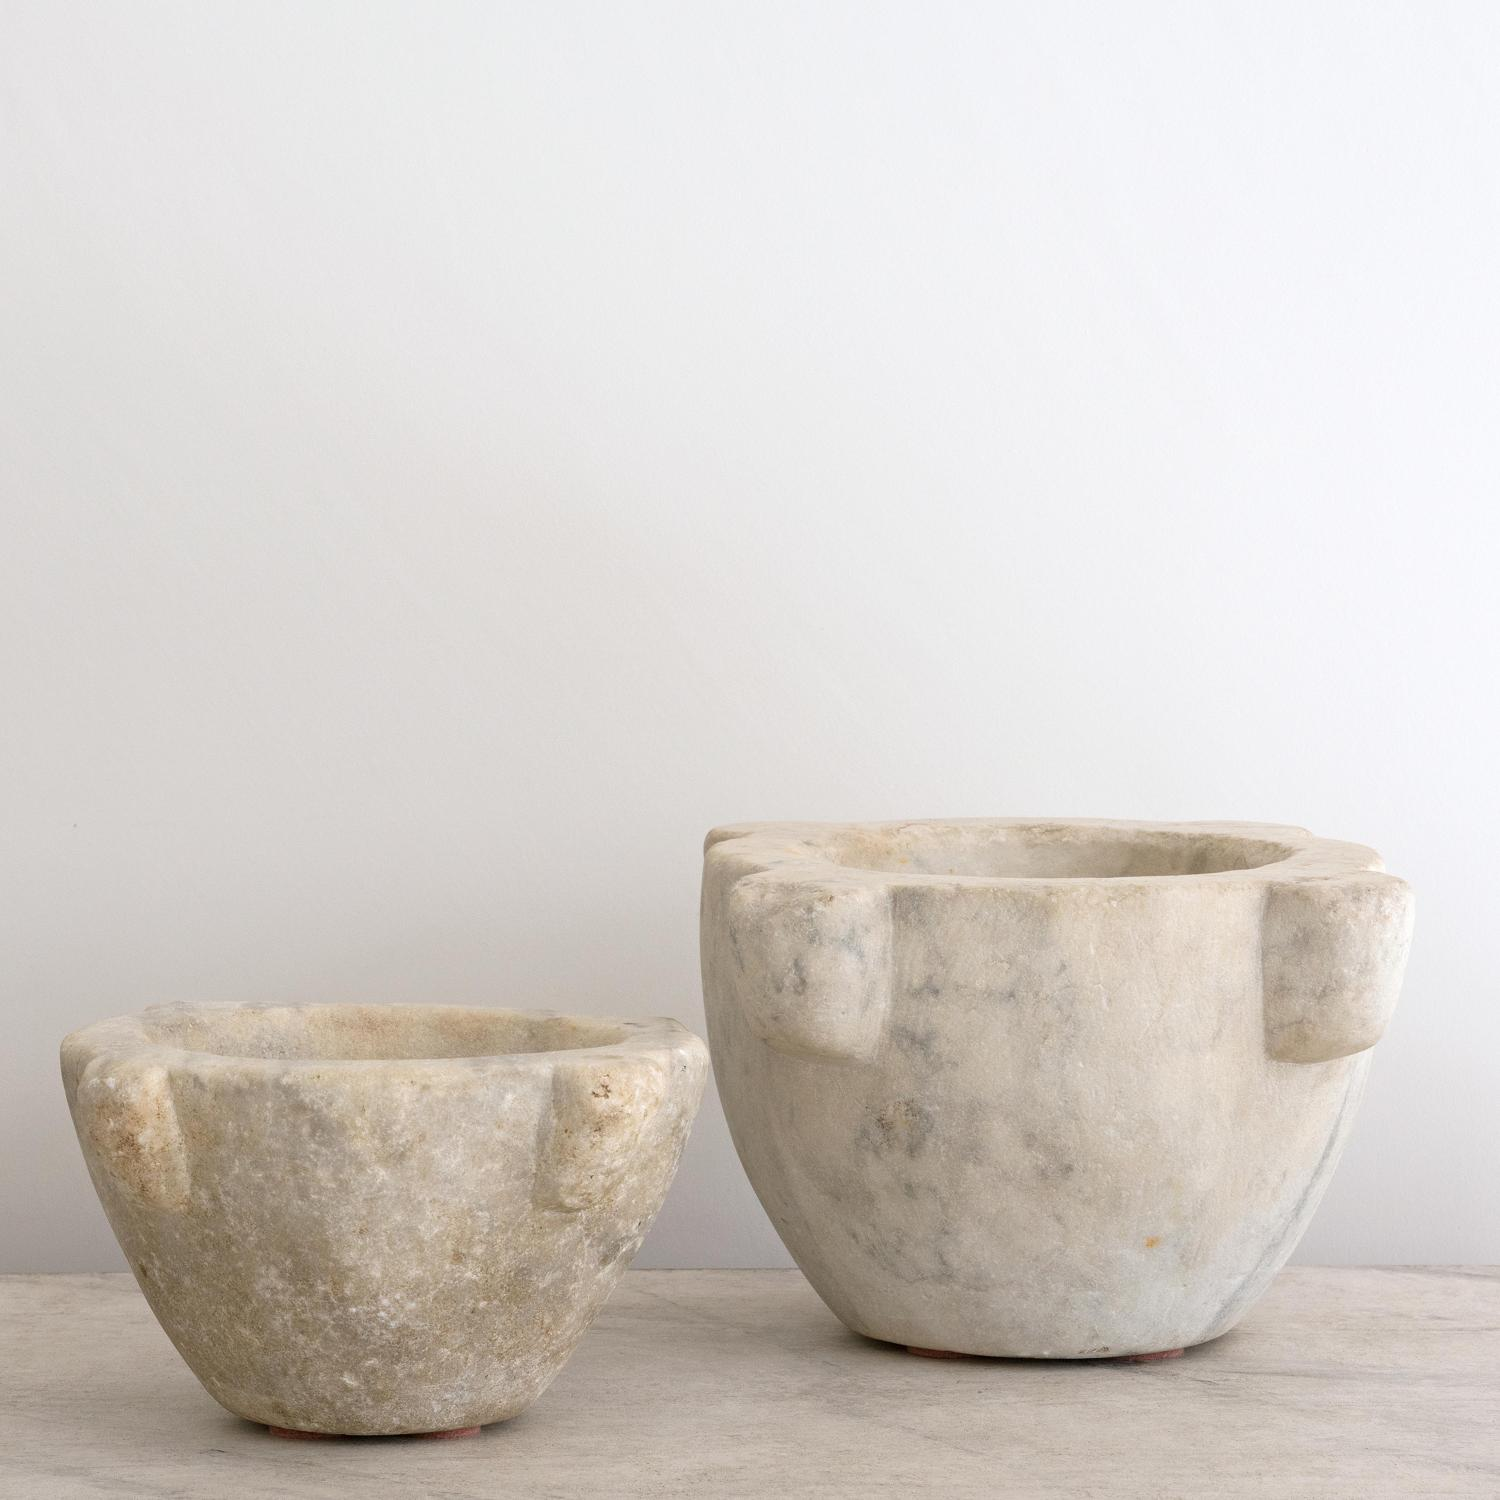 TWO 18TH CENTURY ITALIAN MARBLE MORTARS